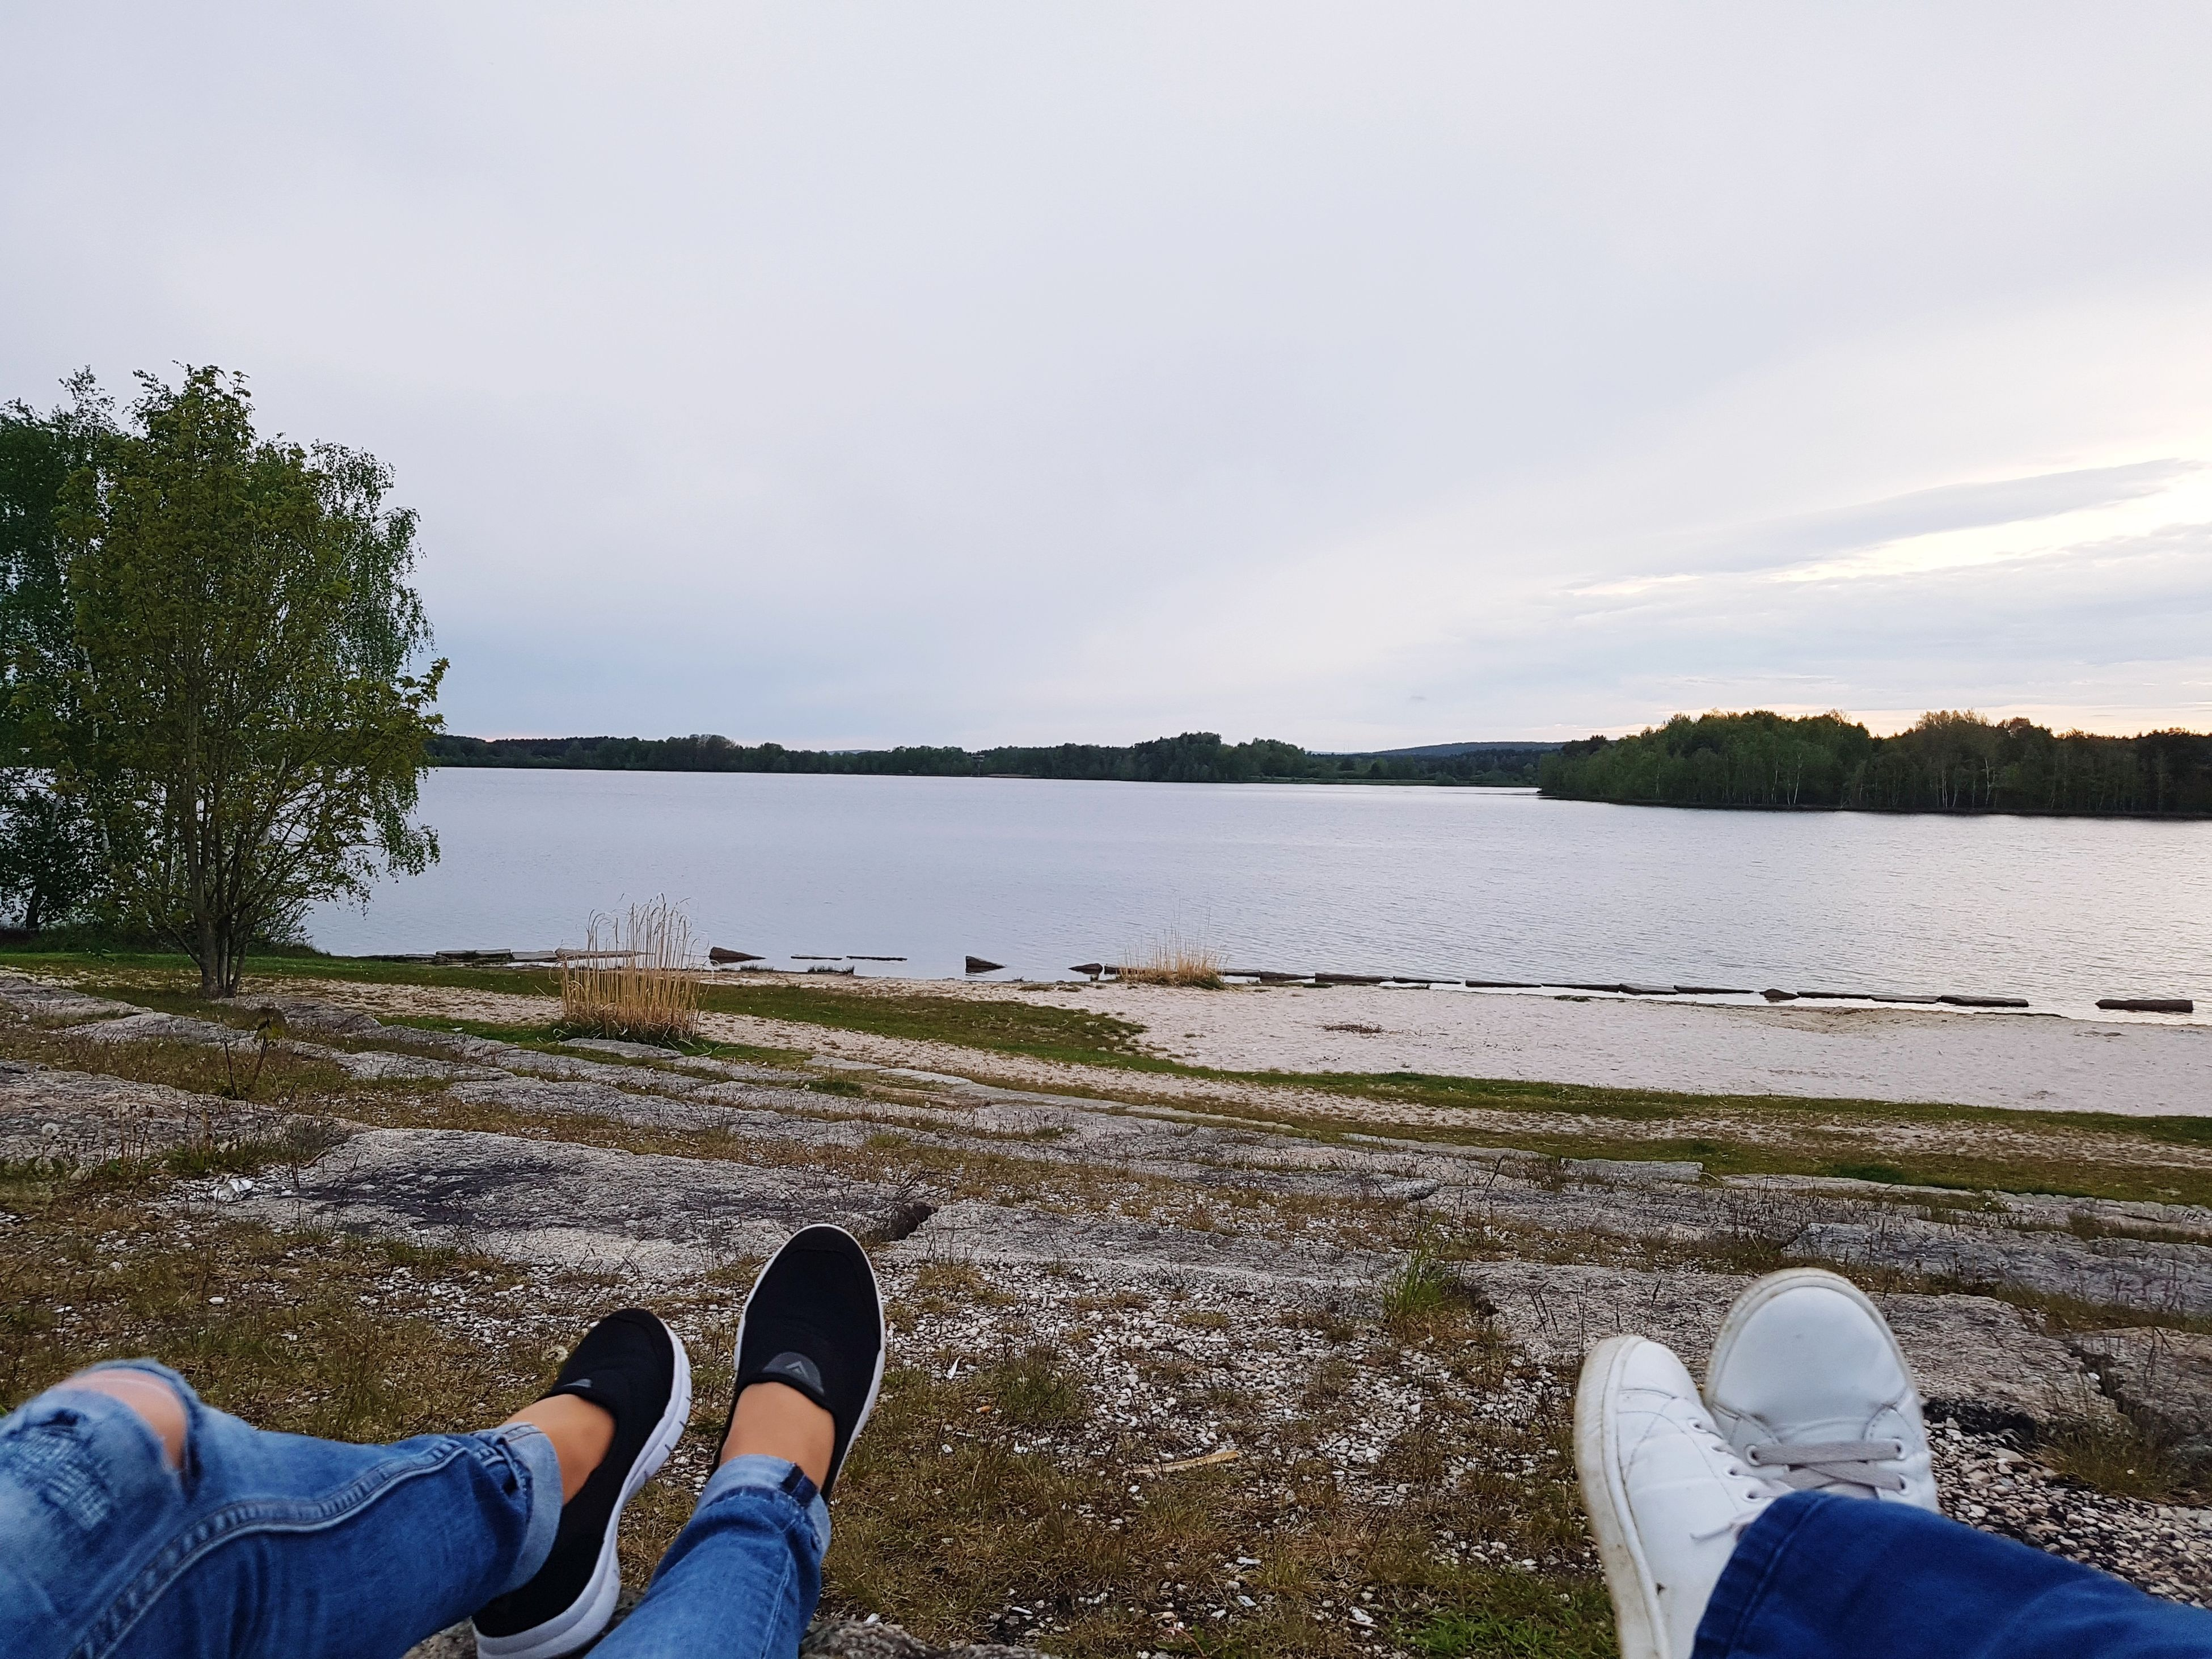 shoe, low section, human leg, water, personal perspective, real people, nature, outdoors, day, human body part, leisure activity, beauty in nature, river, sky, tranquility, cloud - sky, riverbank, men, scenics, lifestyles, standing, tree, grass, people